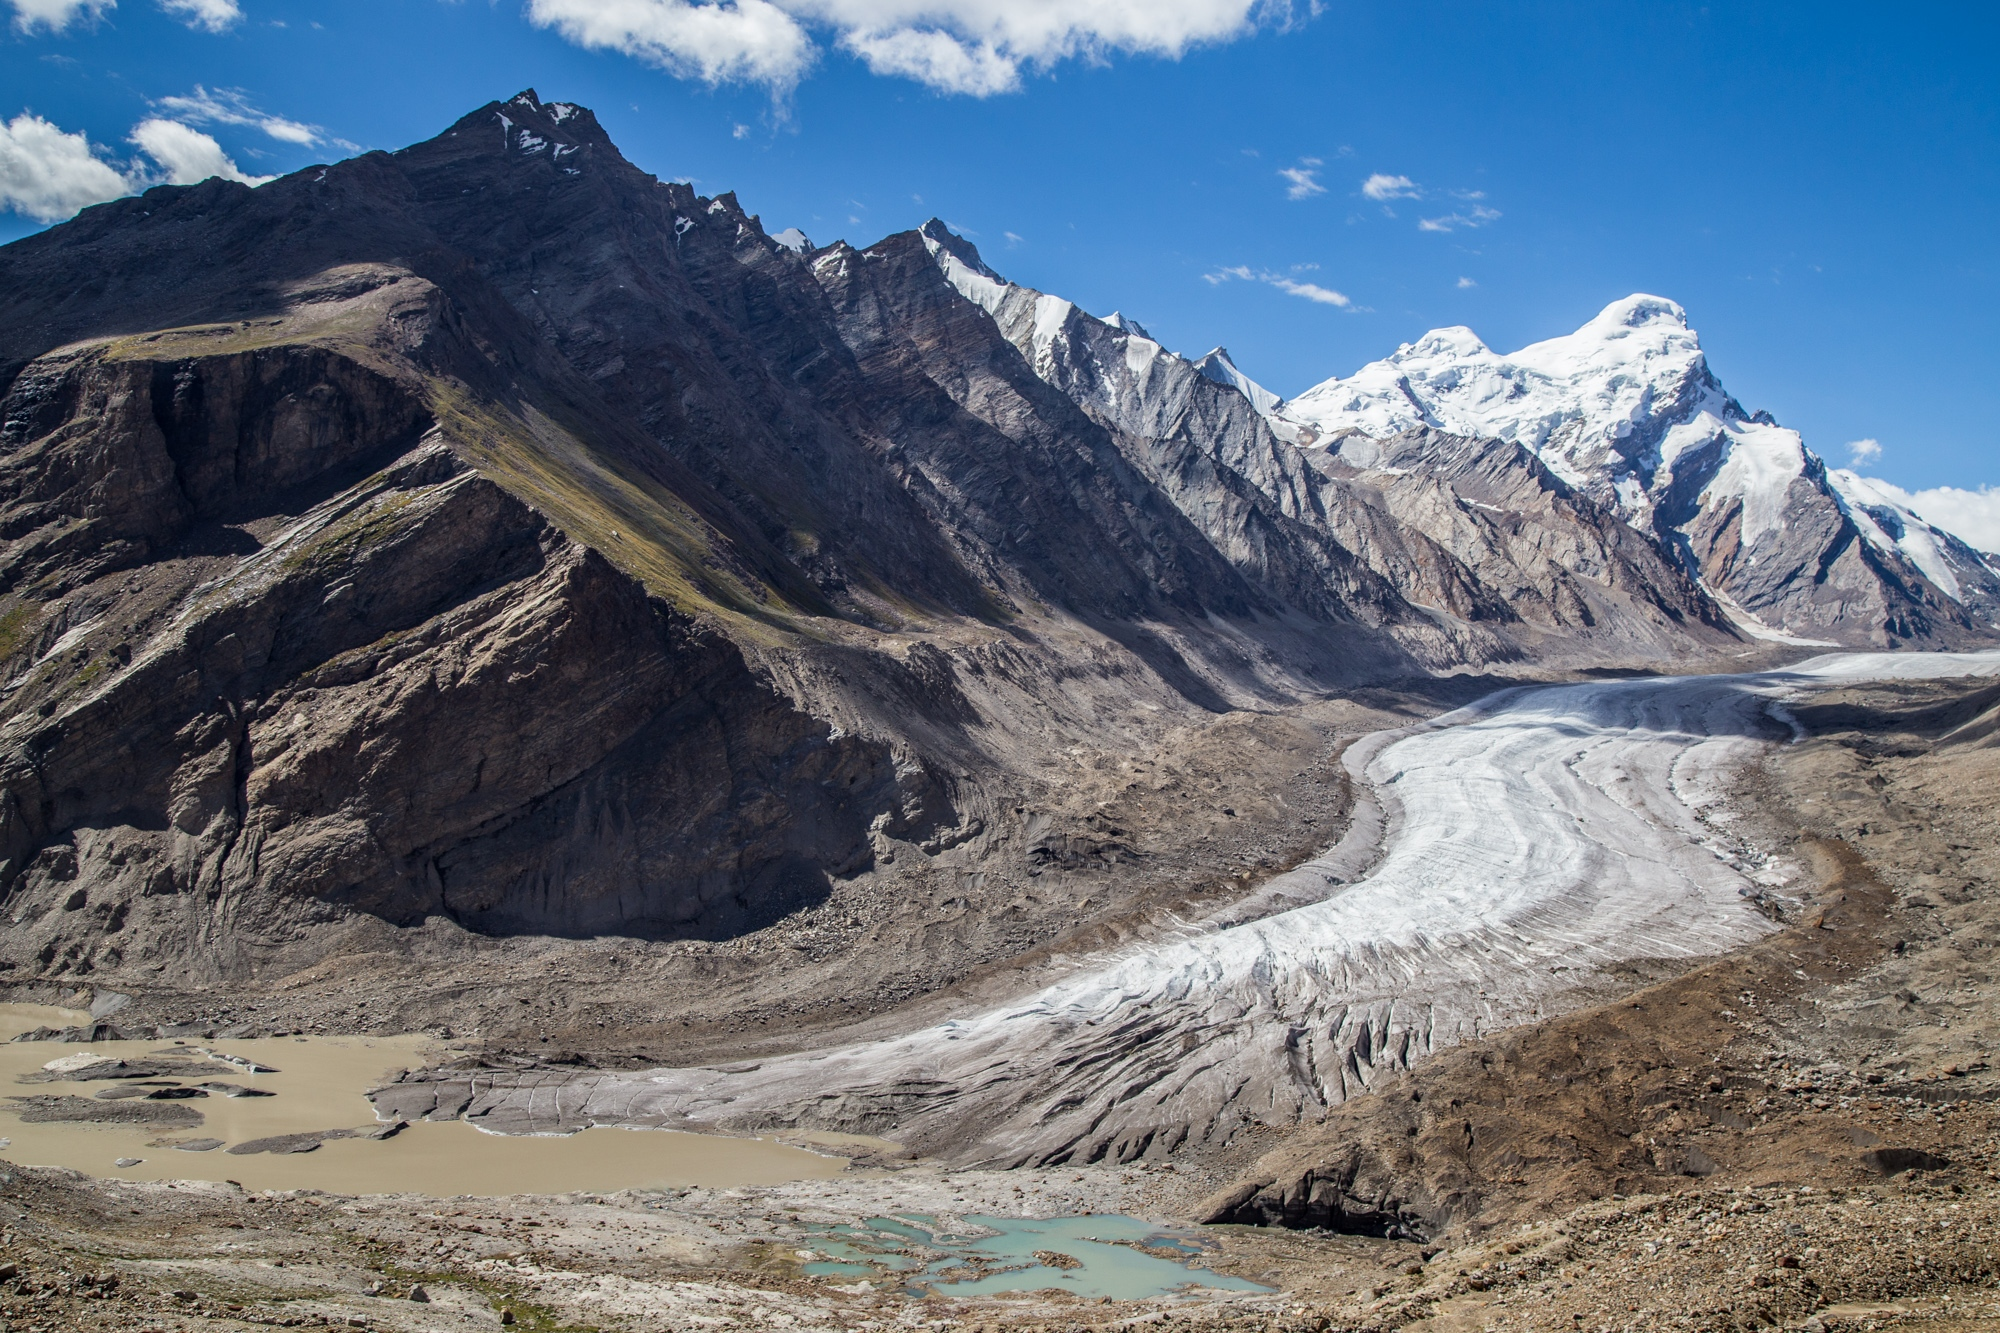 The mighty, but retreating Drang Drung glacier in India's Zanskar Himalaya range. According to locals, the glacier was hundreds of metres longer and thicker no more than 20-years ago.